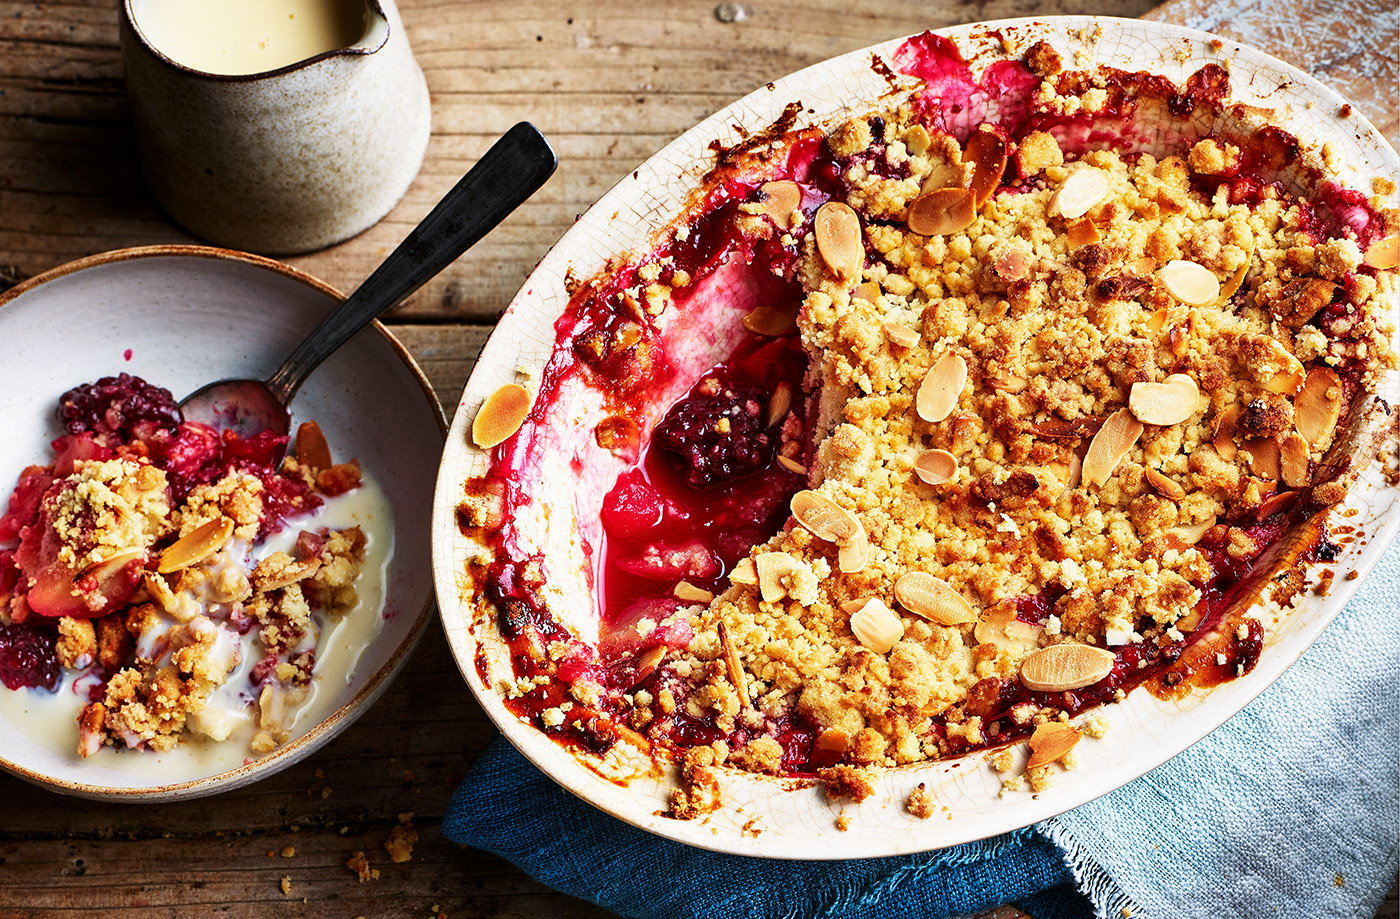 Apple and berry crumble recipe